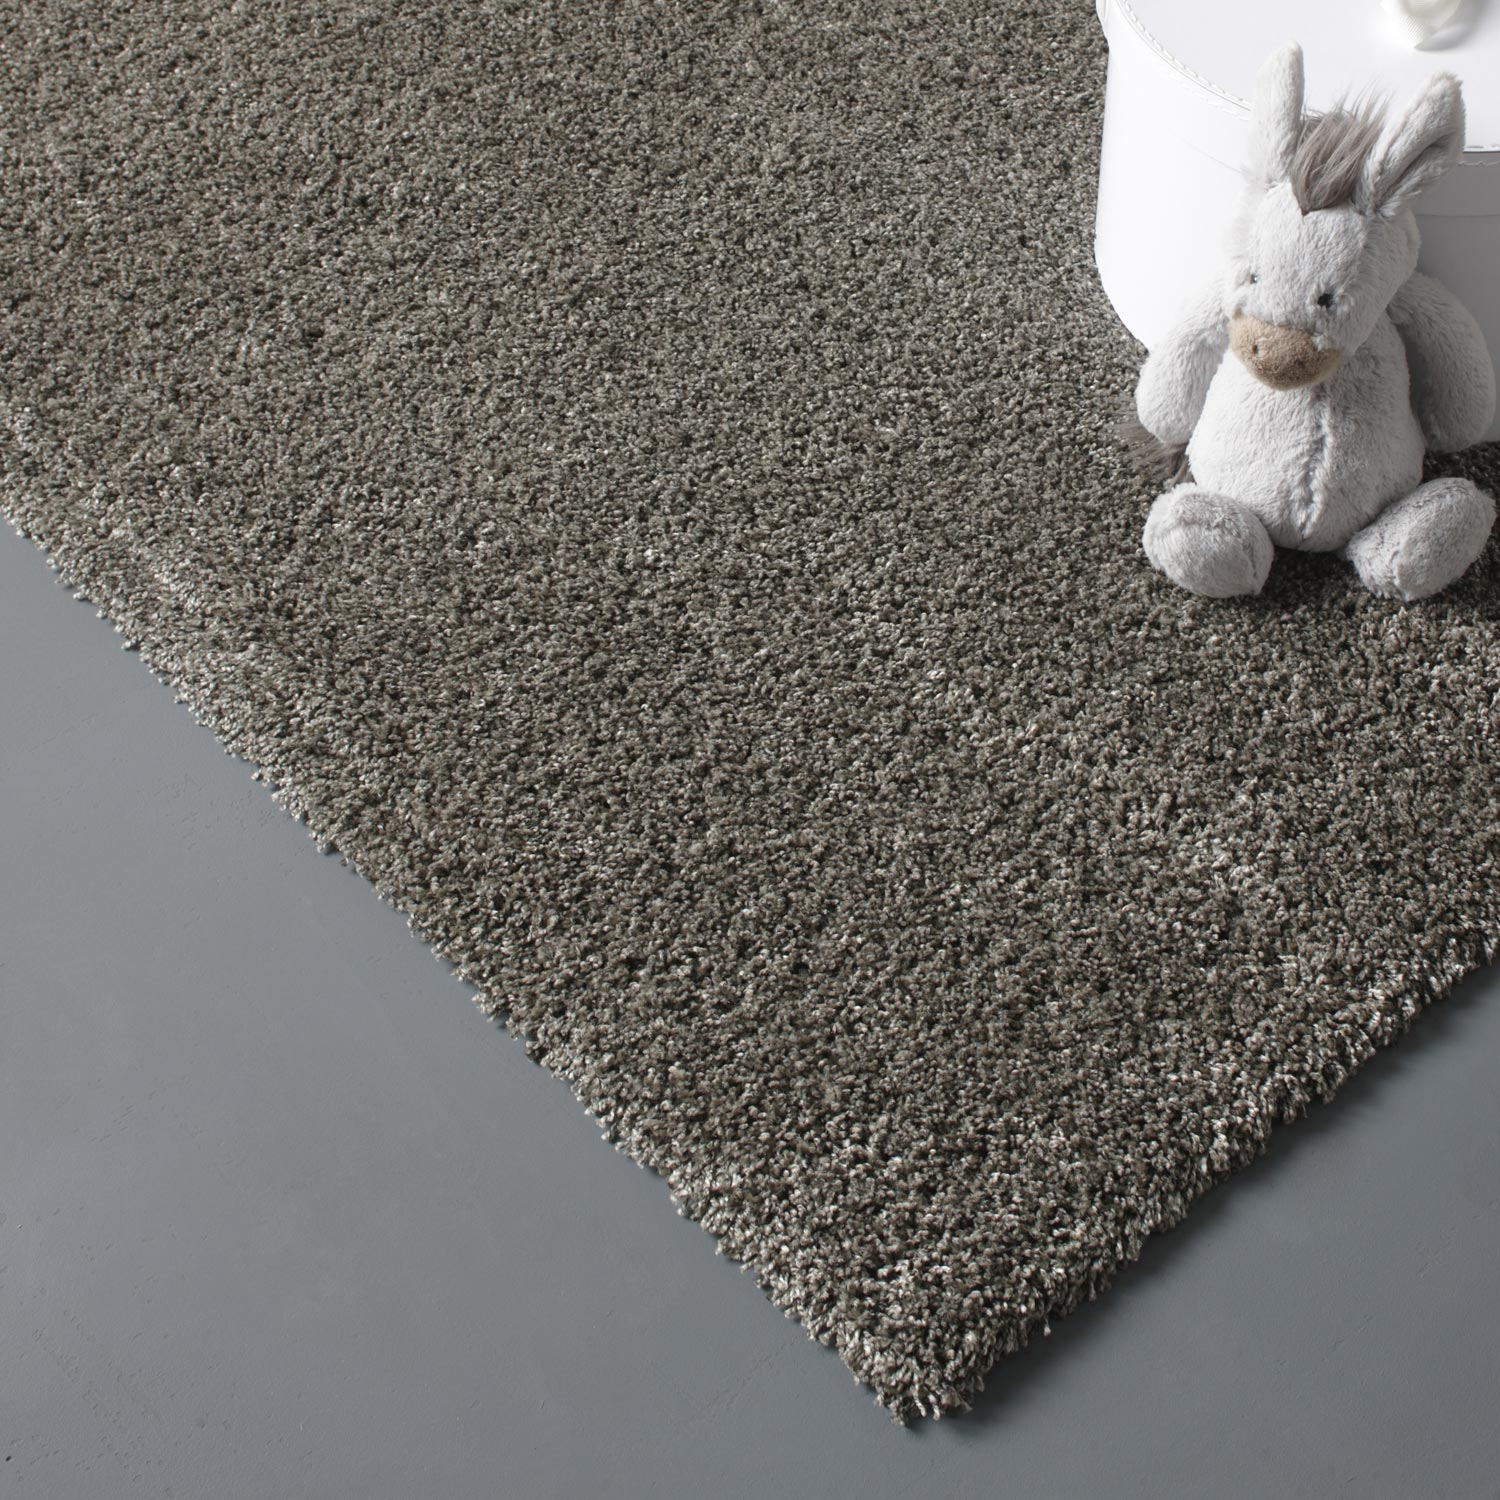 tapis taupe shaggy lizzy l60 x l115 cm - Tapis Taupe